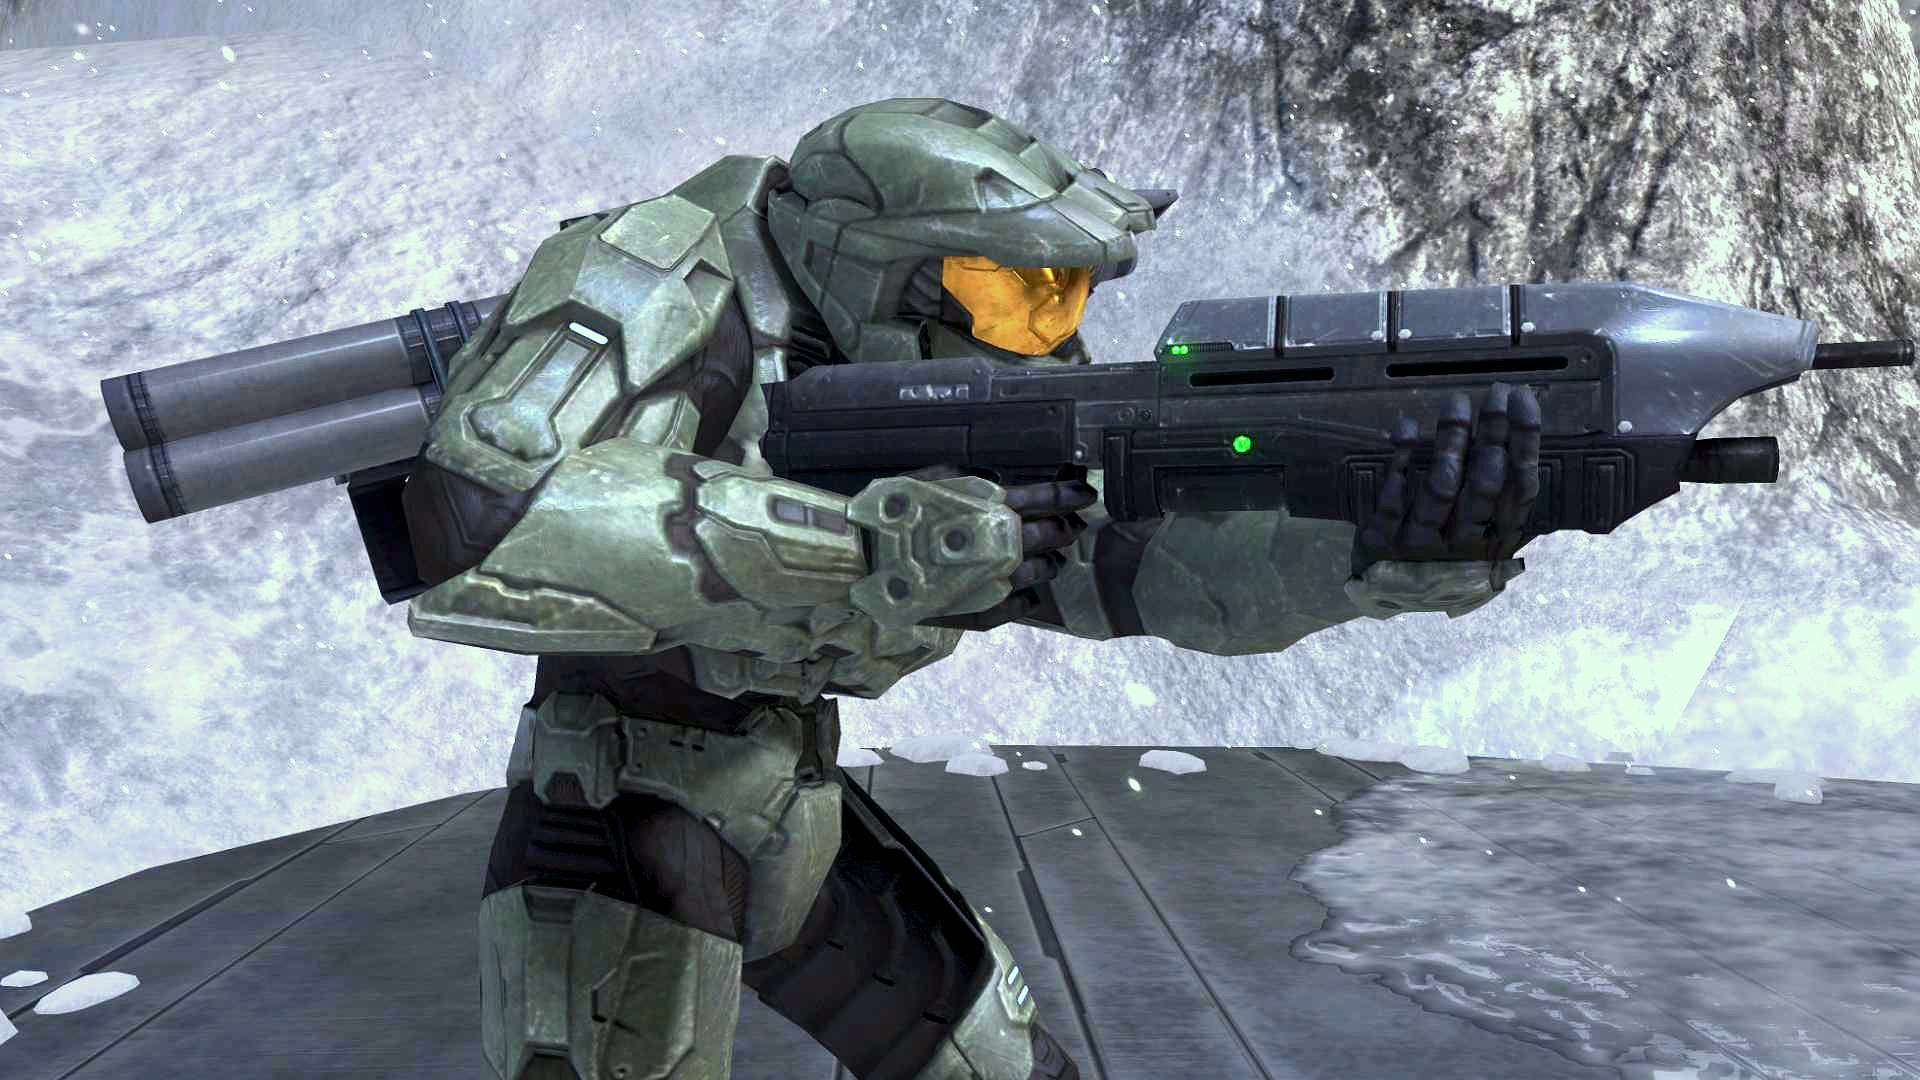 1523559956 5cb3291e69 o Halo 3: Heavy Weapons